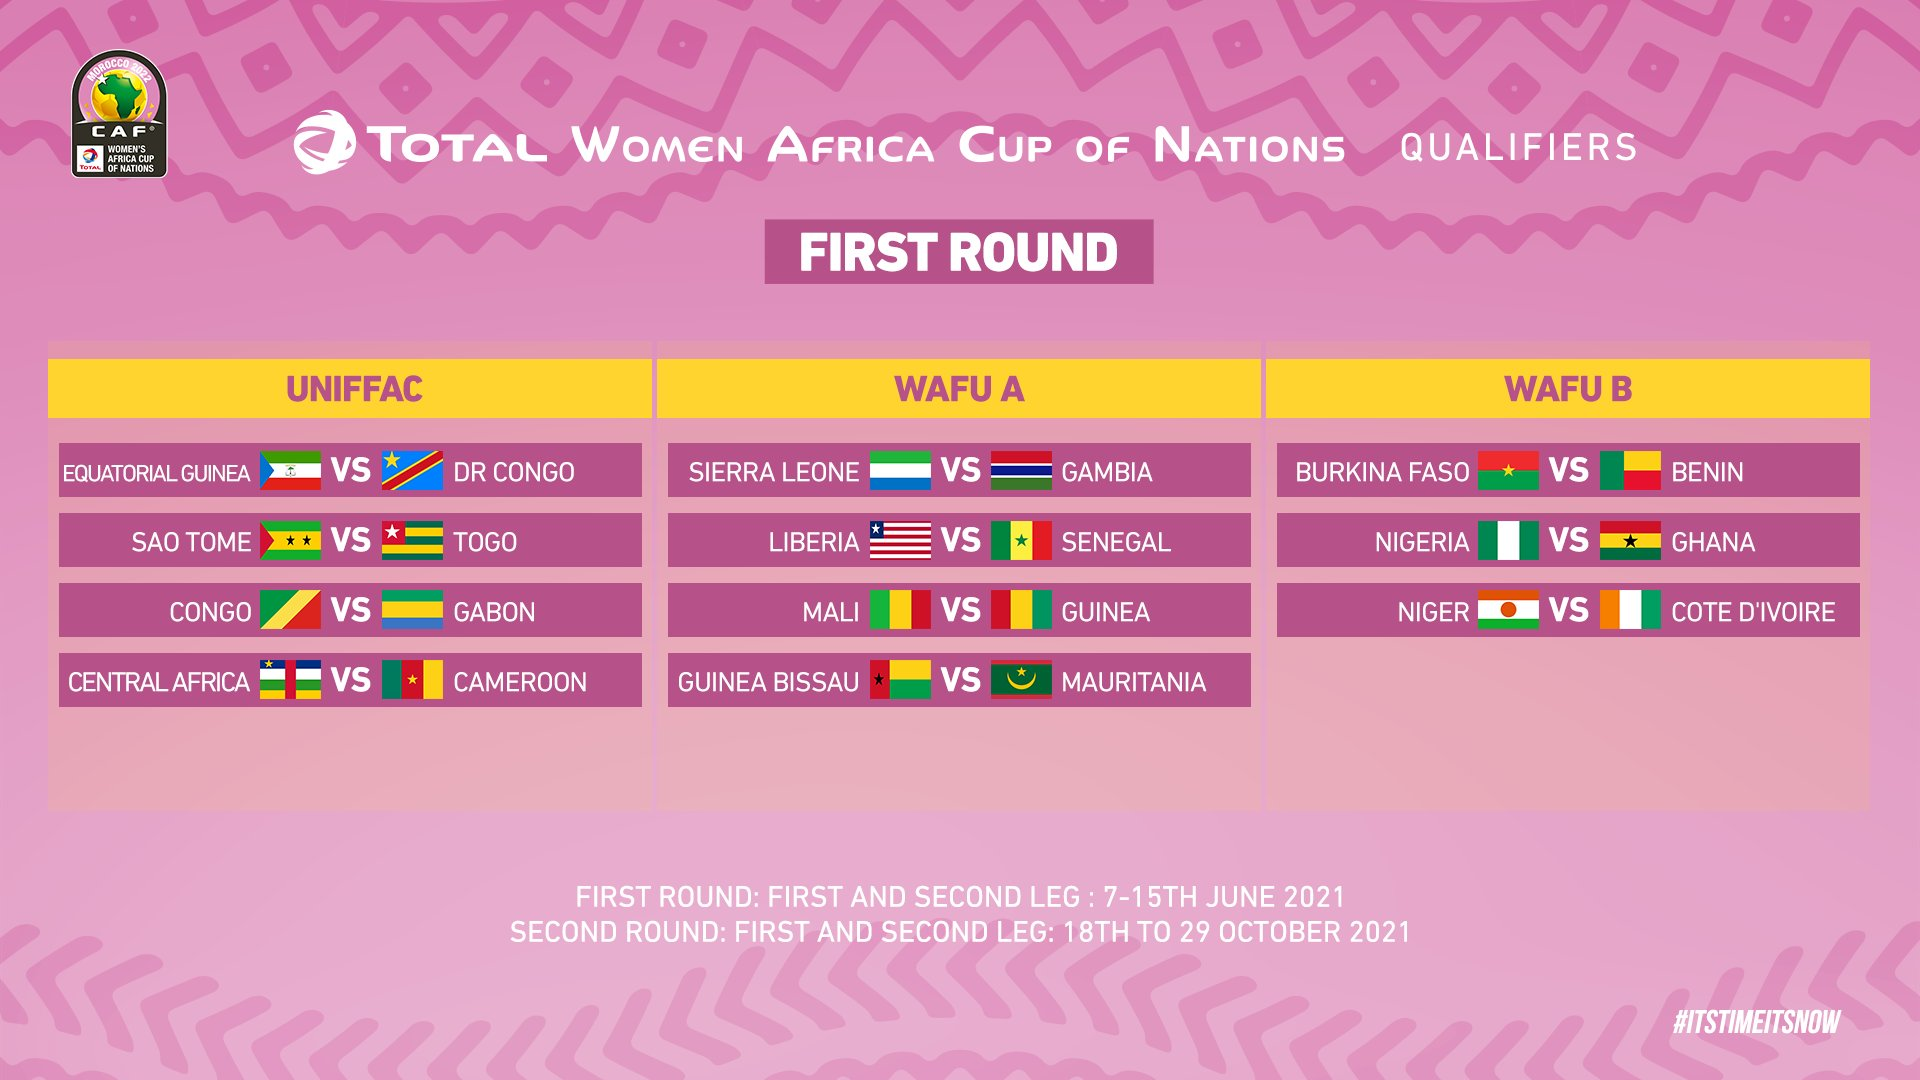 2022 AWCON Qualifiers: Super Falcons To Face Ghana In First Round